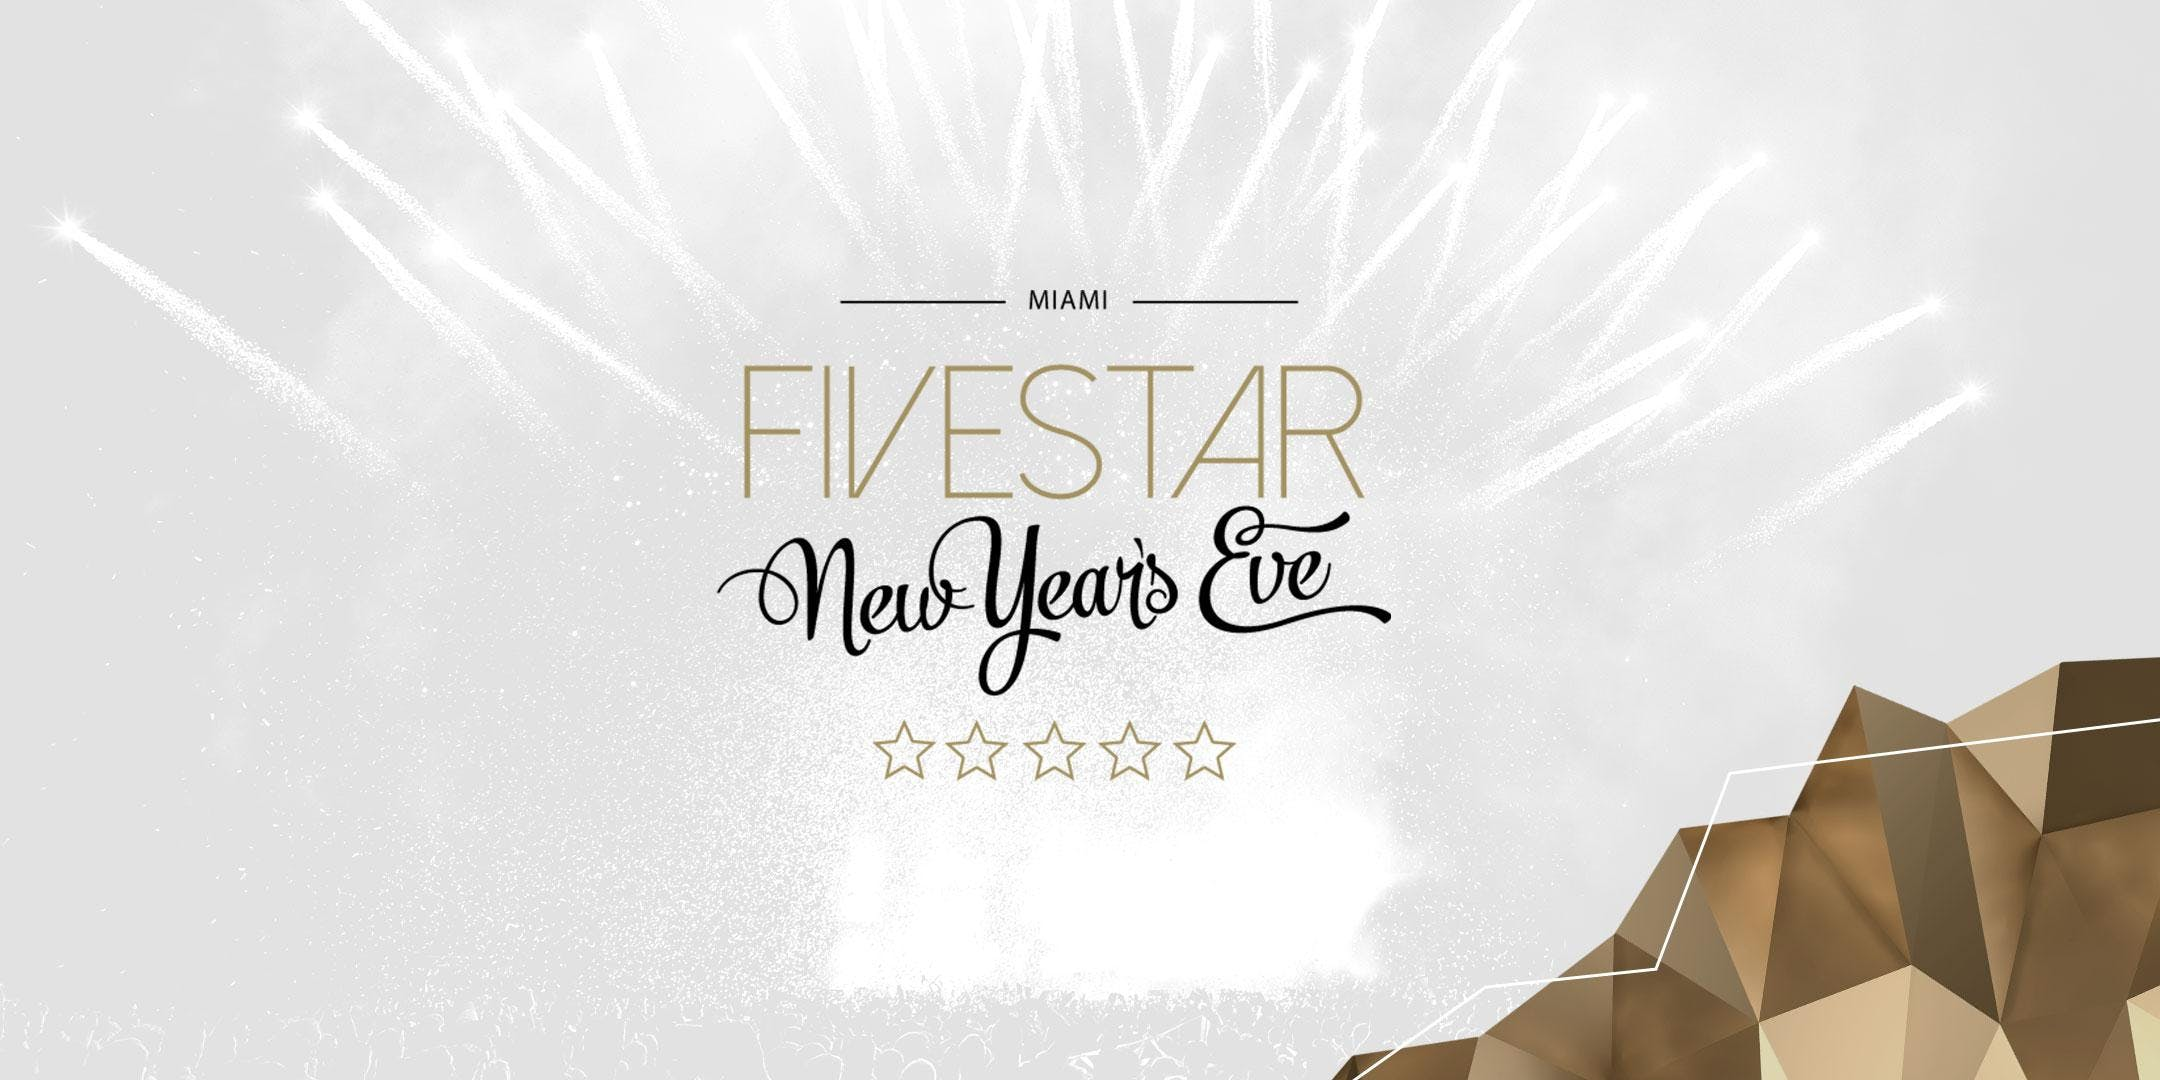 Pitbull New Years Eve 2020.Pitbull New Years Eve 2020 Miami S Best New Year S Eve